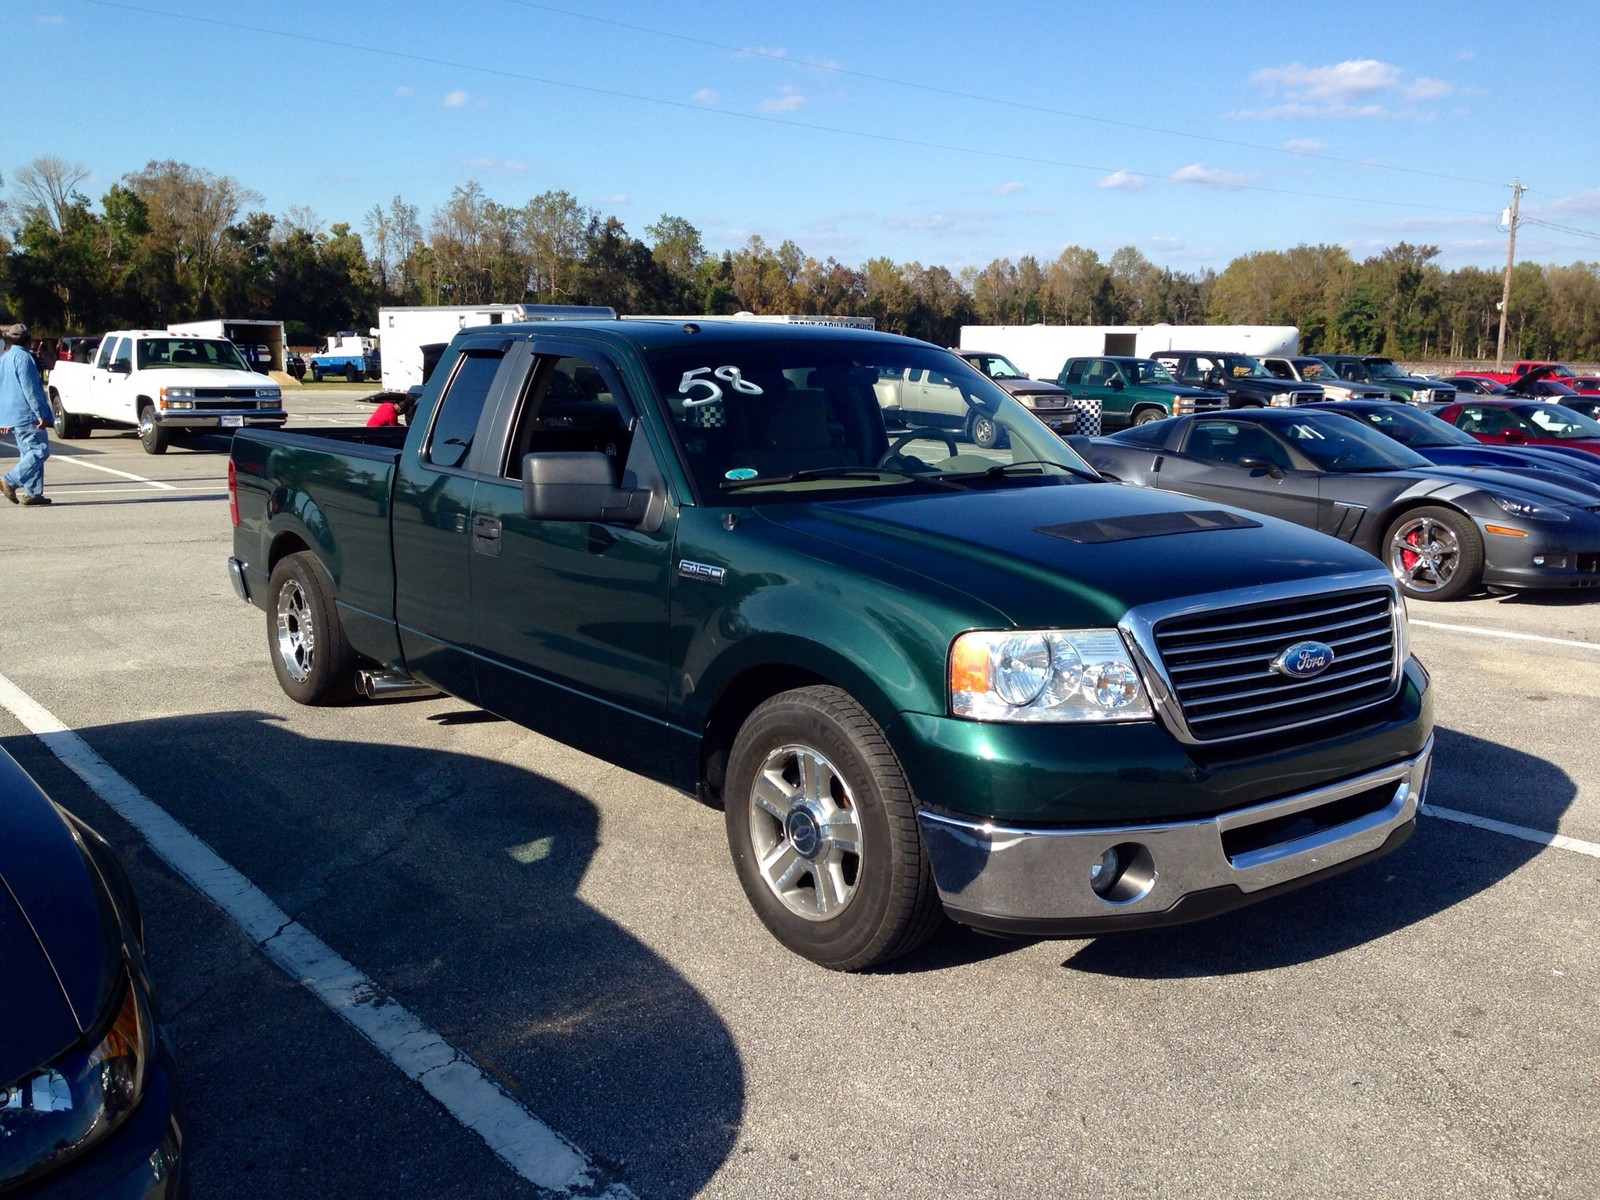 2007 Ford F150 Super Cab XLT Whipple 14 Mile Trap Speeds